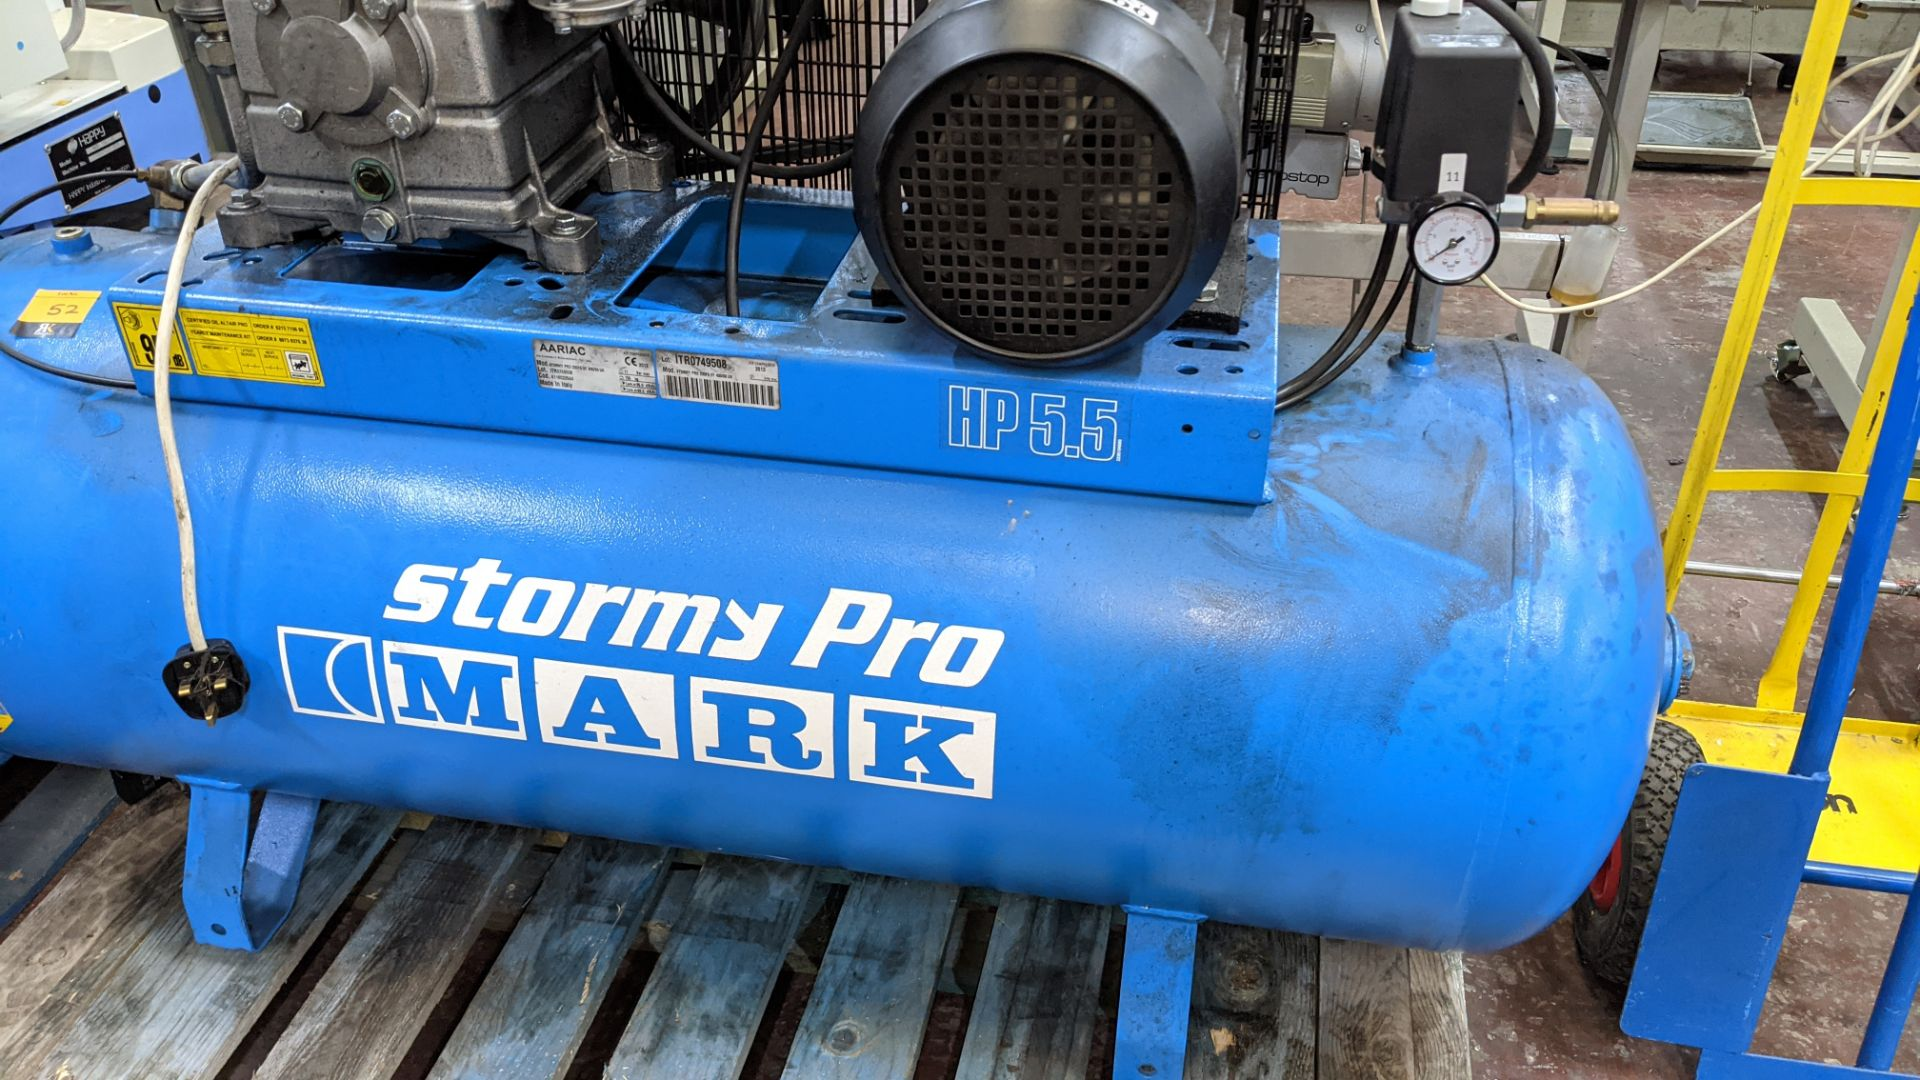 Mark Stormy Pro all-in-one compressor comprising horizontal welded air receiver with compressor equi - Image 4 of 17